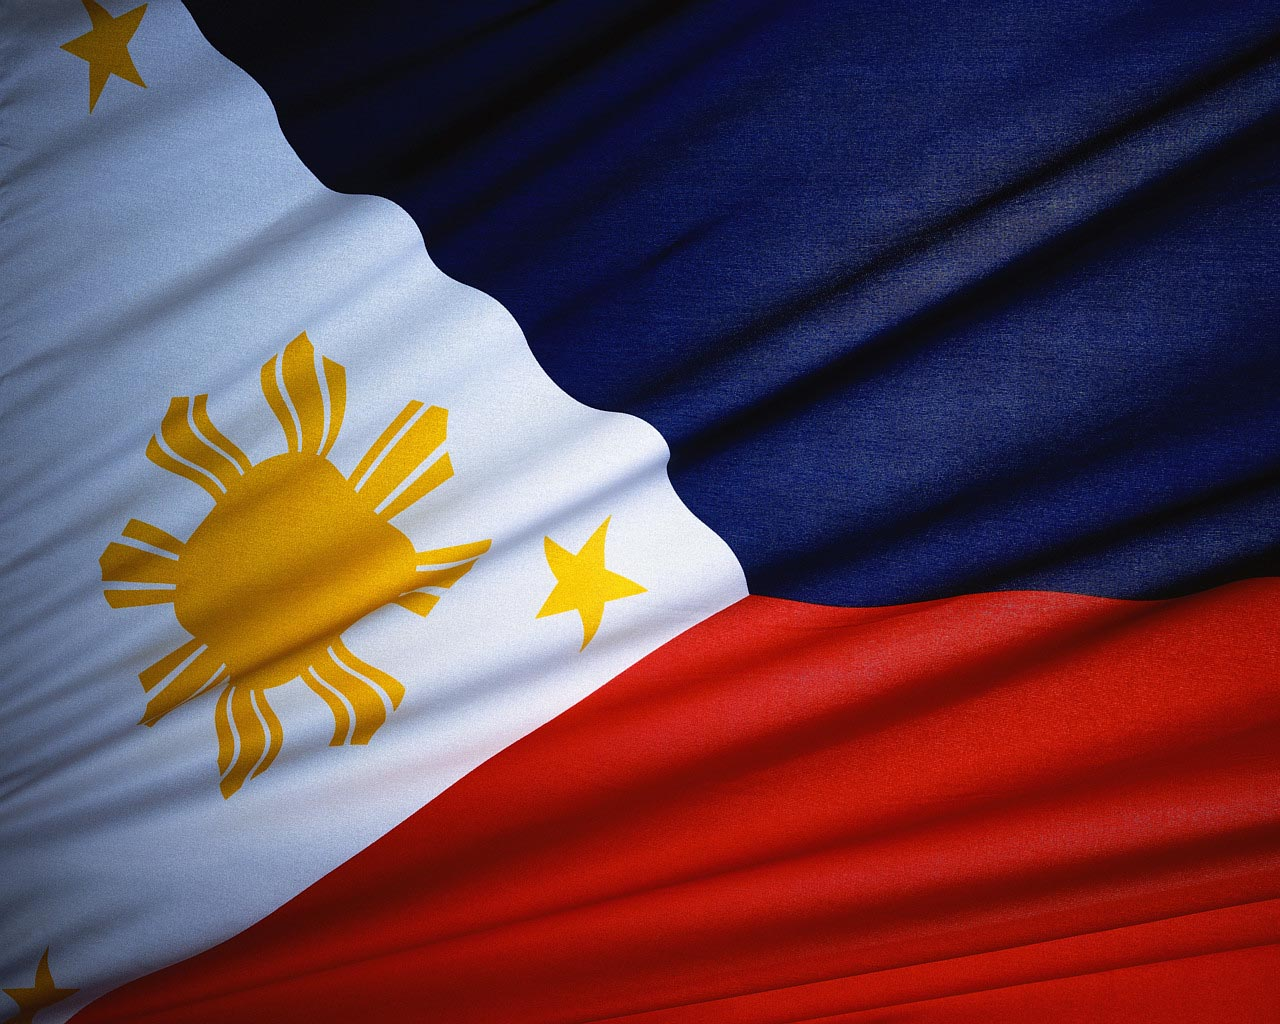 Photo of the Philippine flag